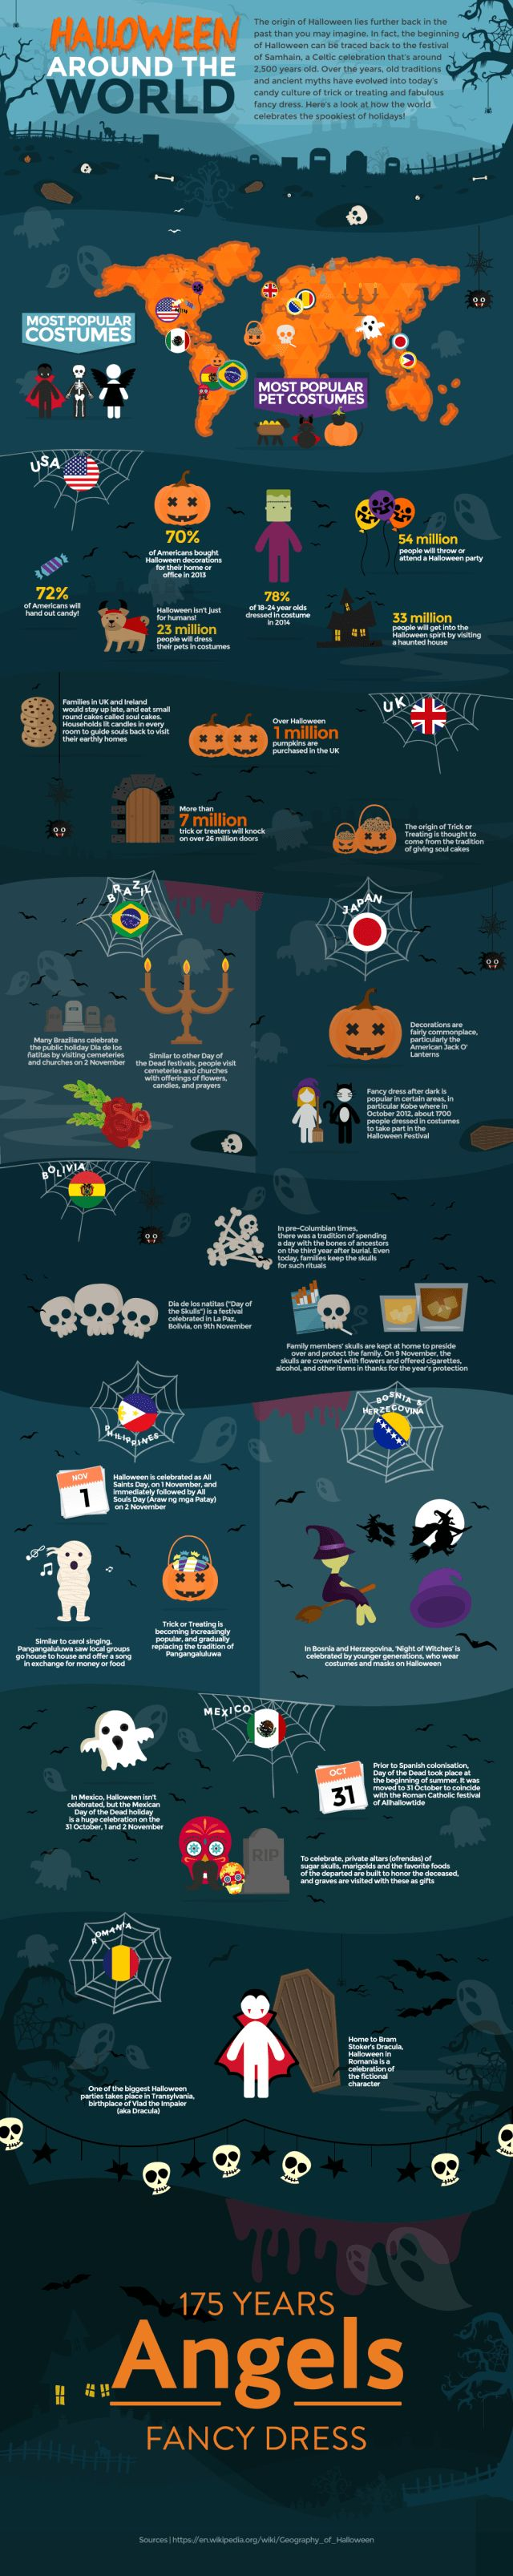 Halloween Around the World Infographic #christmasinfographic